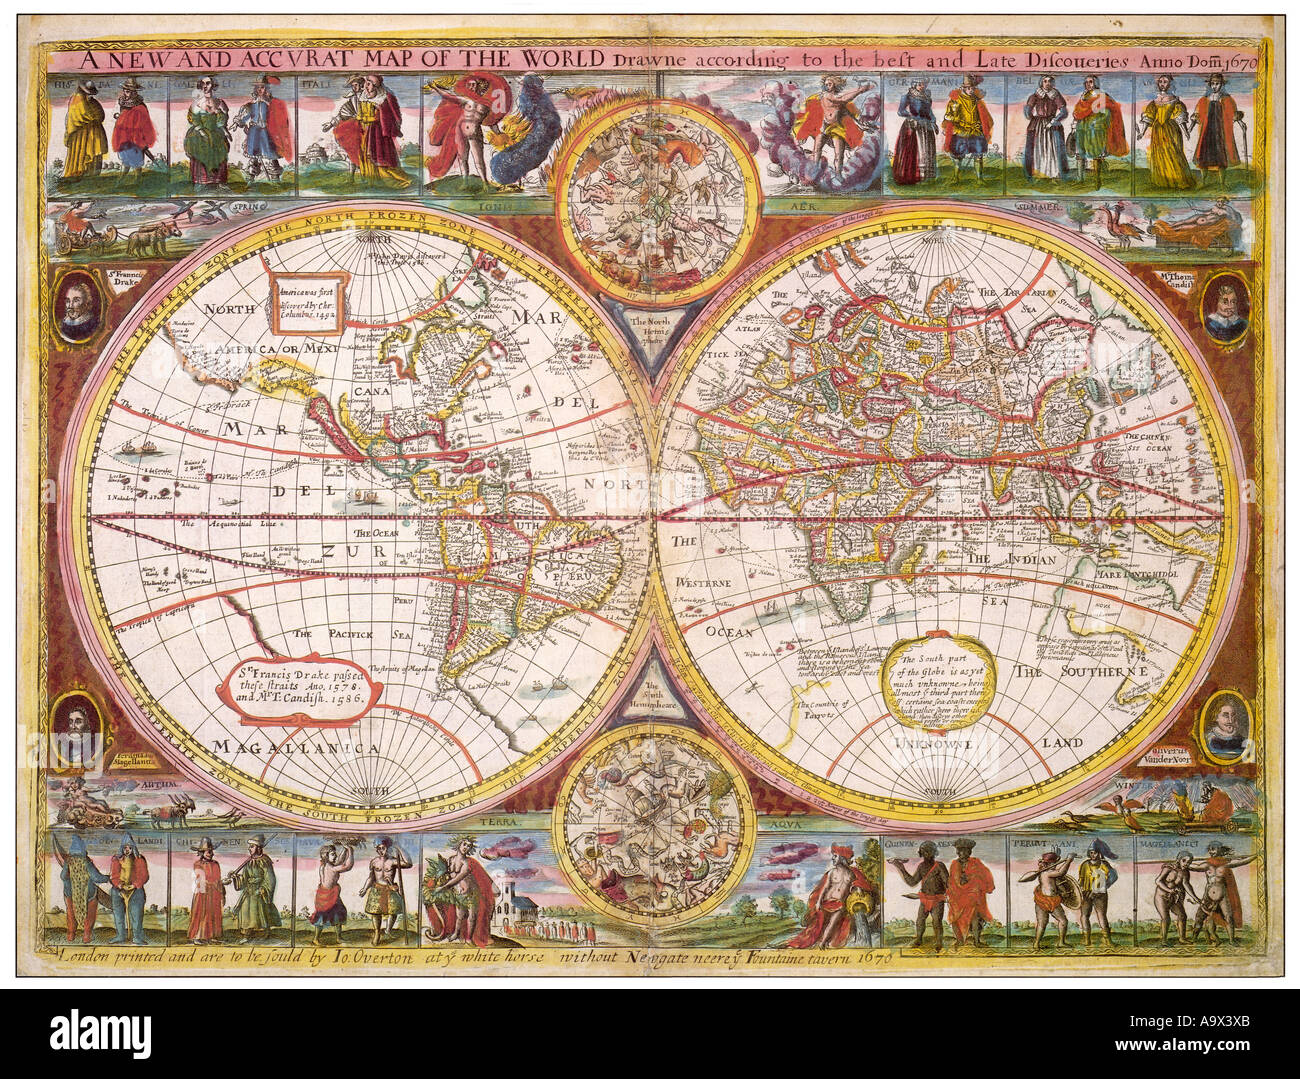 First Accurate Map Of The World.A New Accurate Map The World Drawn Stock Photos A New Accurate Map